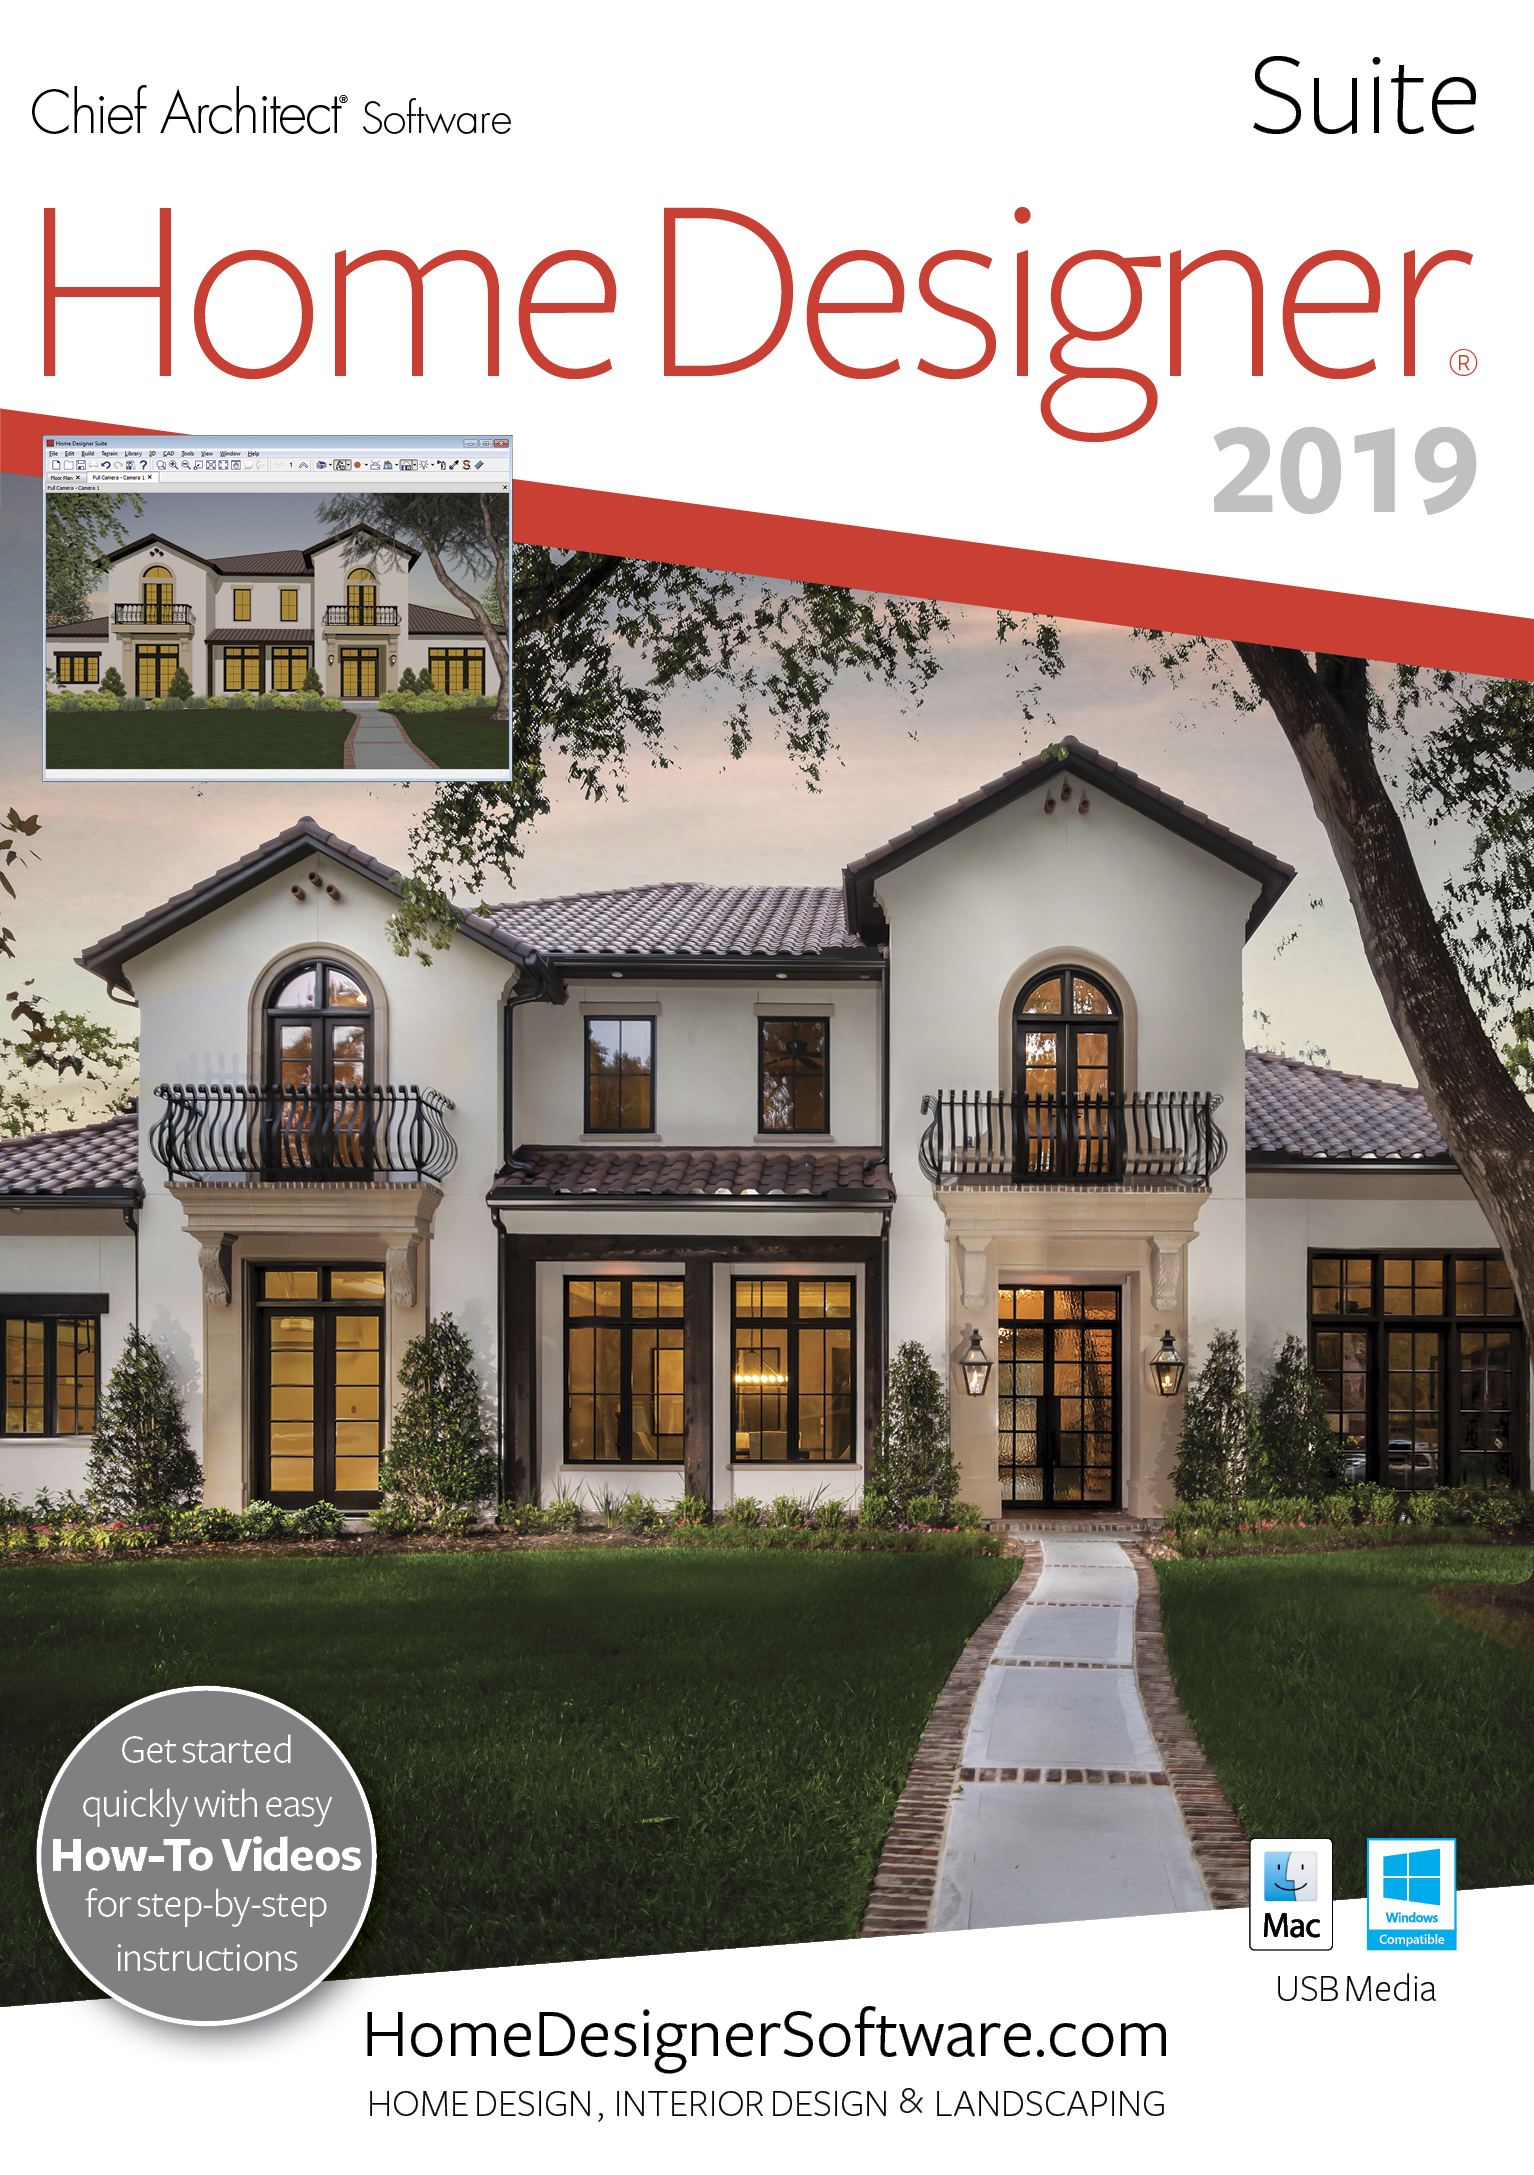 Amazon.com: Home Designer Suite 2019 - Mac Download [Download]: on security home design, morgan home design, zen home design, revit home design, bradford home design, mobile home design, gucci home design, white home design, netzero home design, sheffield home design, horizon home design, apple home design, giorgio armani home design, google home design, high end home design, design home design, sketchup home design, open source home design, art home design, computer home design,